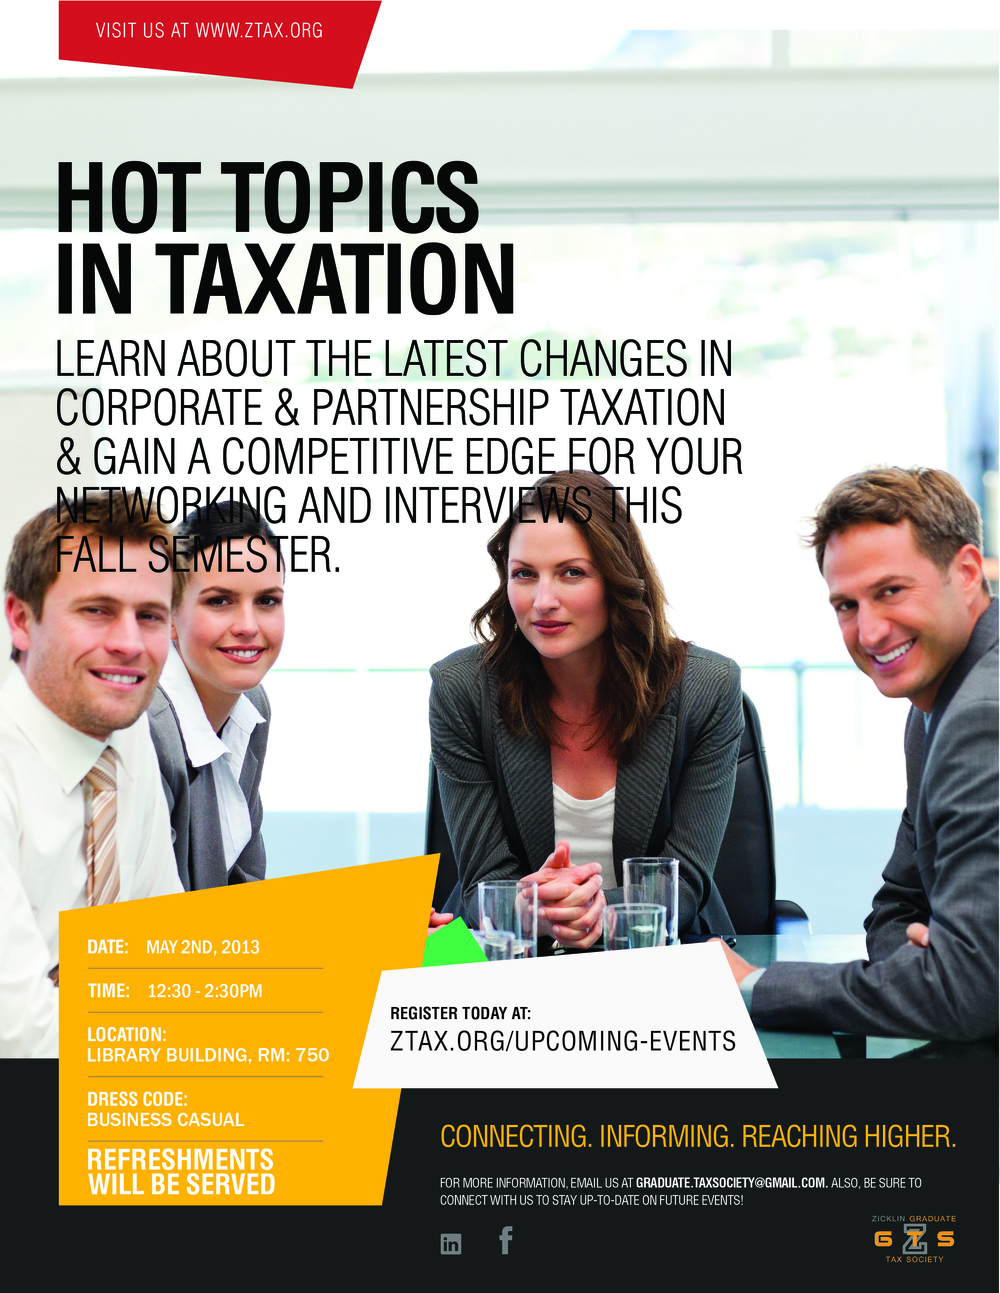 ZGTS Hot Topics in Taxation Flyer 5.2 v2.jpg